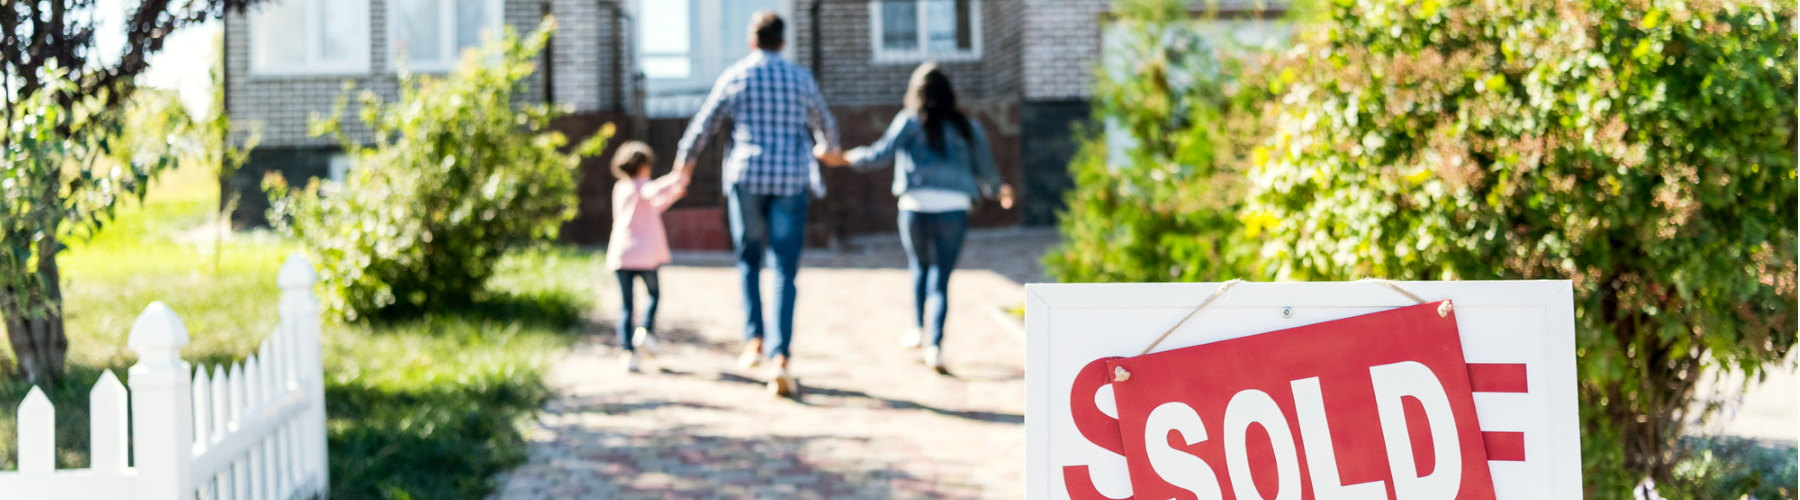 Personal insurance represented by family posing walking into new home